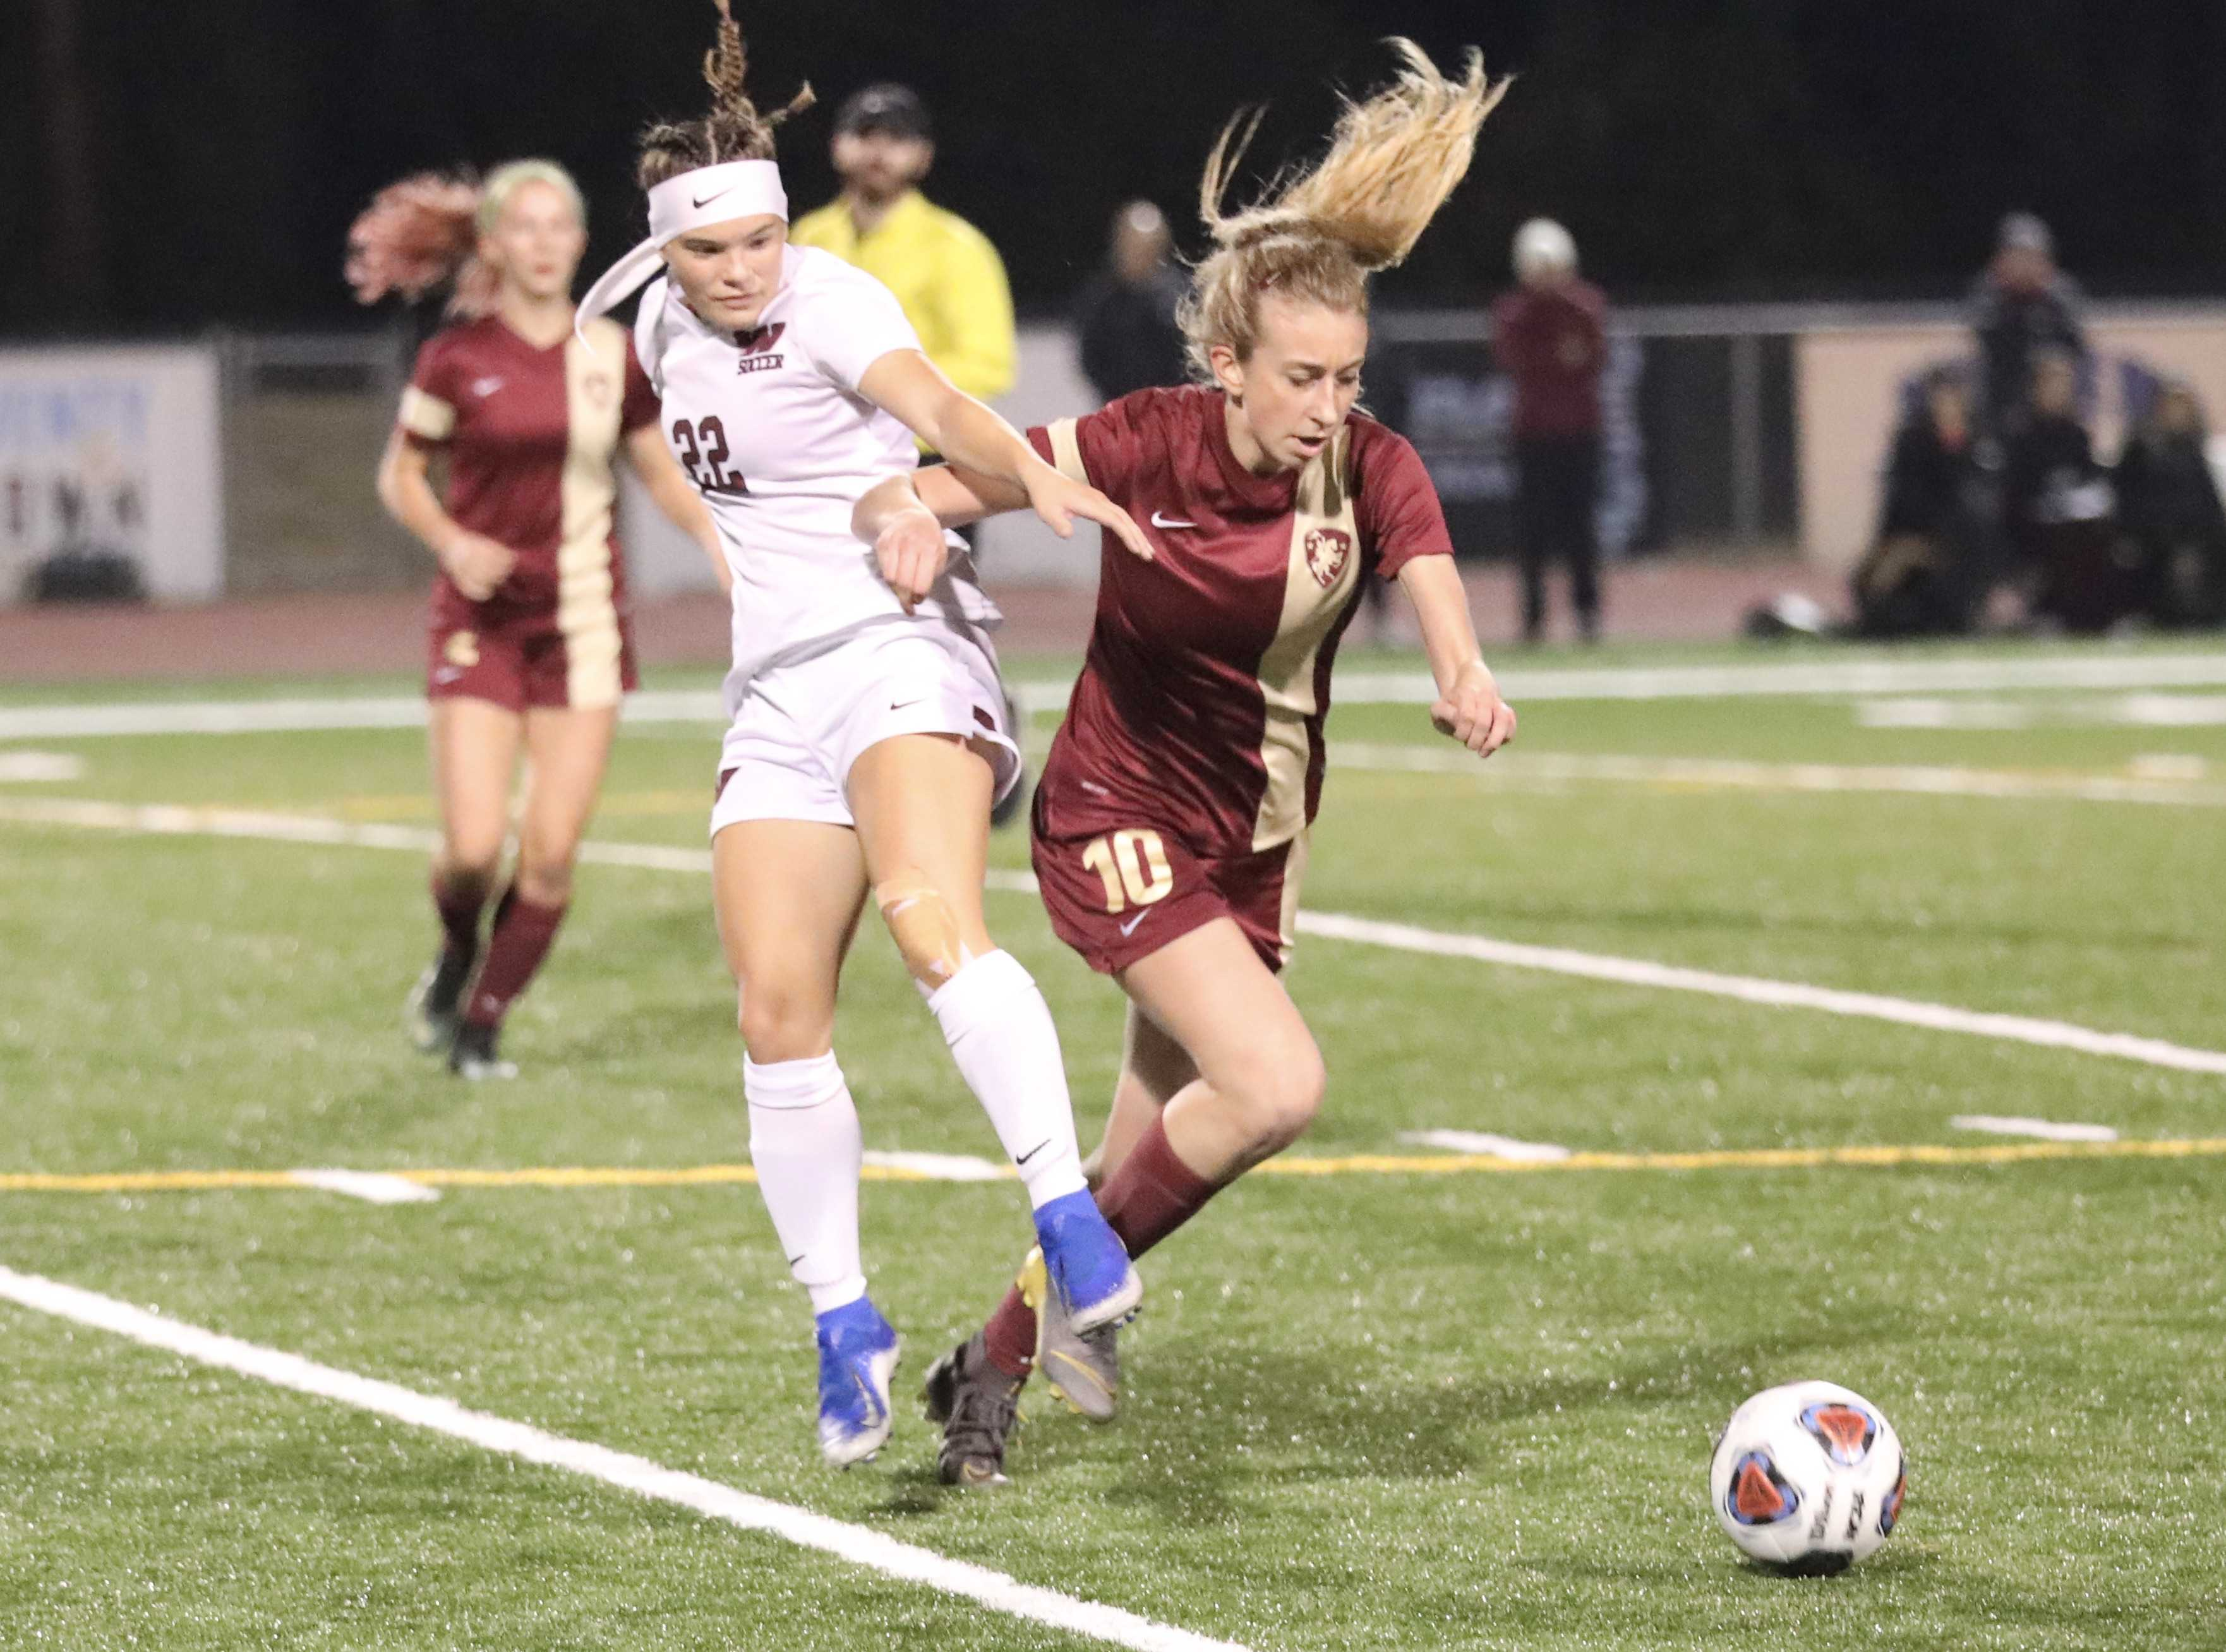 Kaiyana Duxbury of Willamette, left, battles Crescent Valley's Meredity Marten for a free ball Saturday night (Norm Maves Jr.)